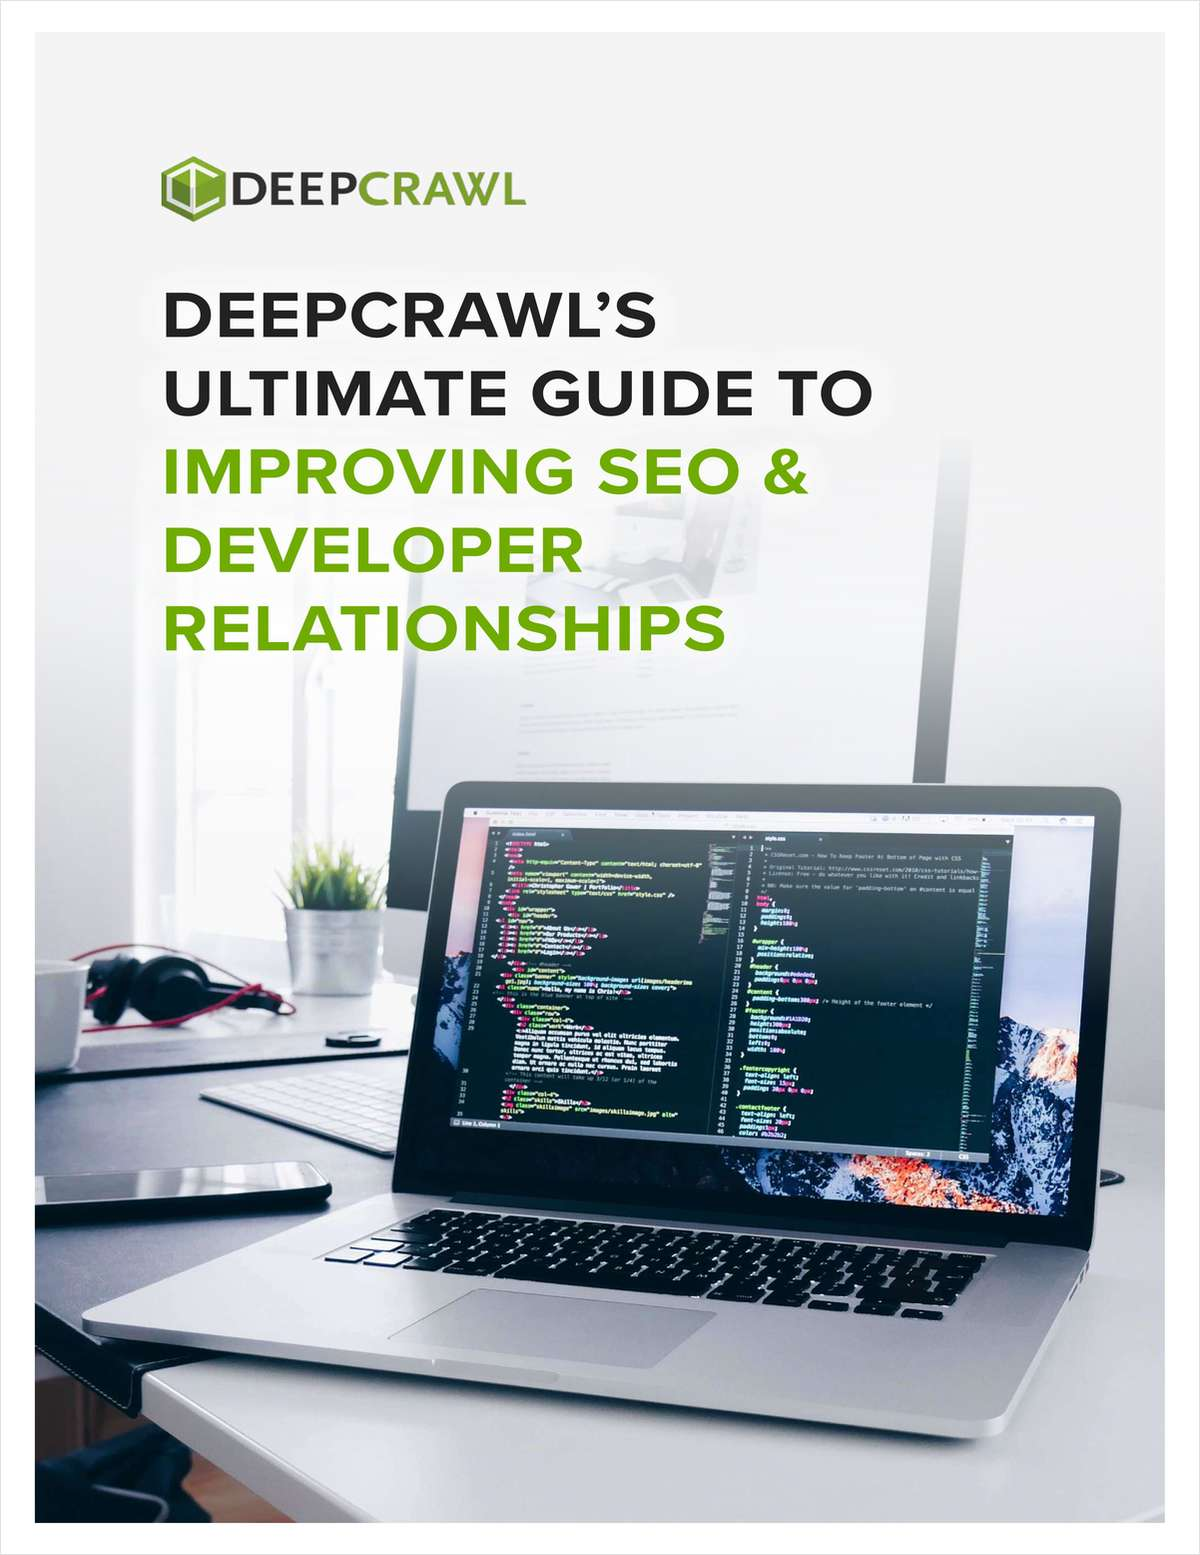 DeepCrawl's Ultimate Guide to Improving SEO & Developer Relationships